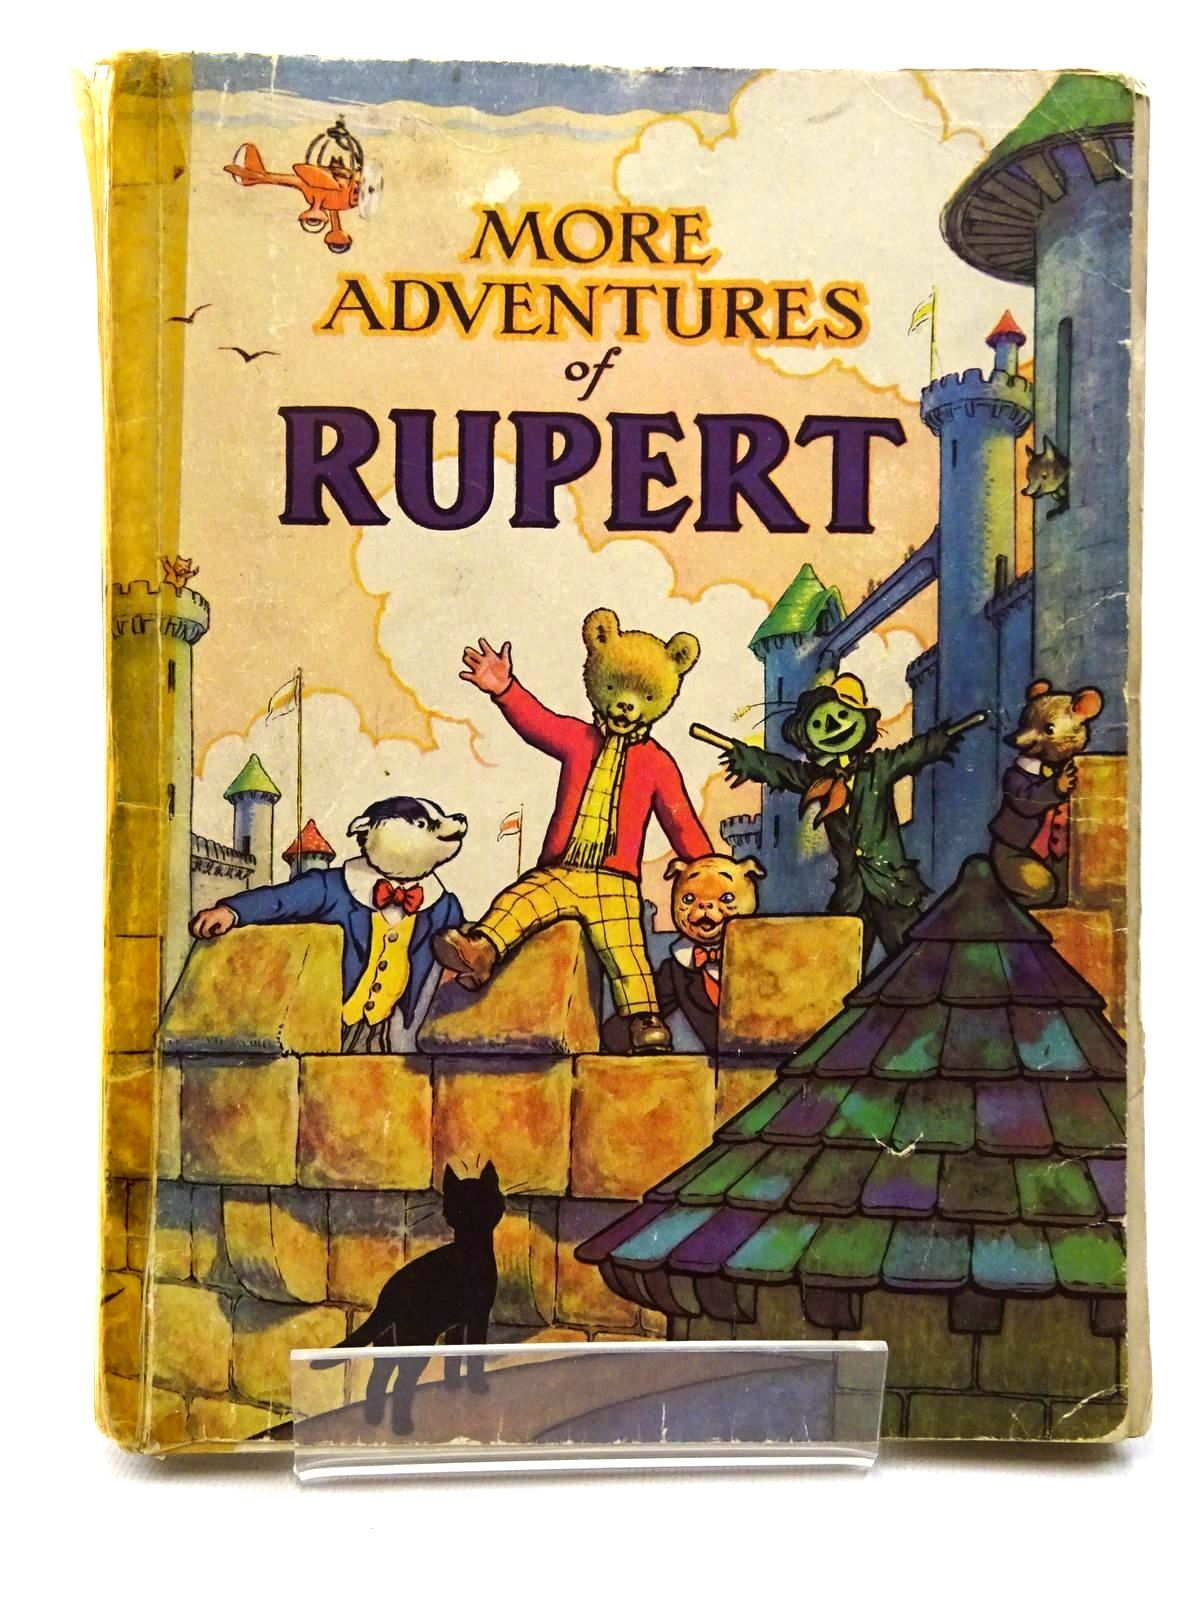 Photo of RUPERT ANNUAL 1942 - MORE ADVENTURES OF RUPERT written by Bestall, Alfred illustrated by Bestall, Alfred published by Daily Express (STOCK CODE: 2124269)  for sale by Stella & Rose's Books